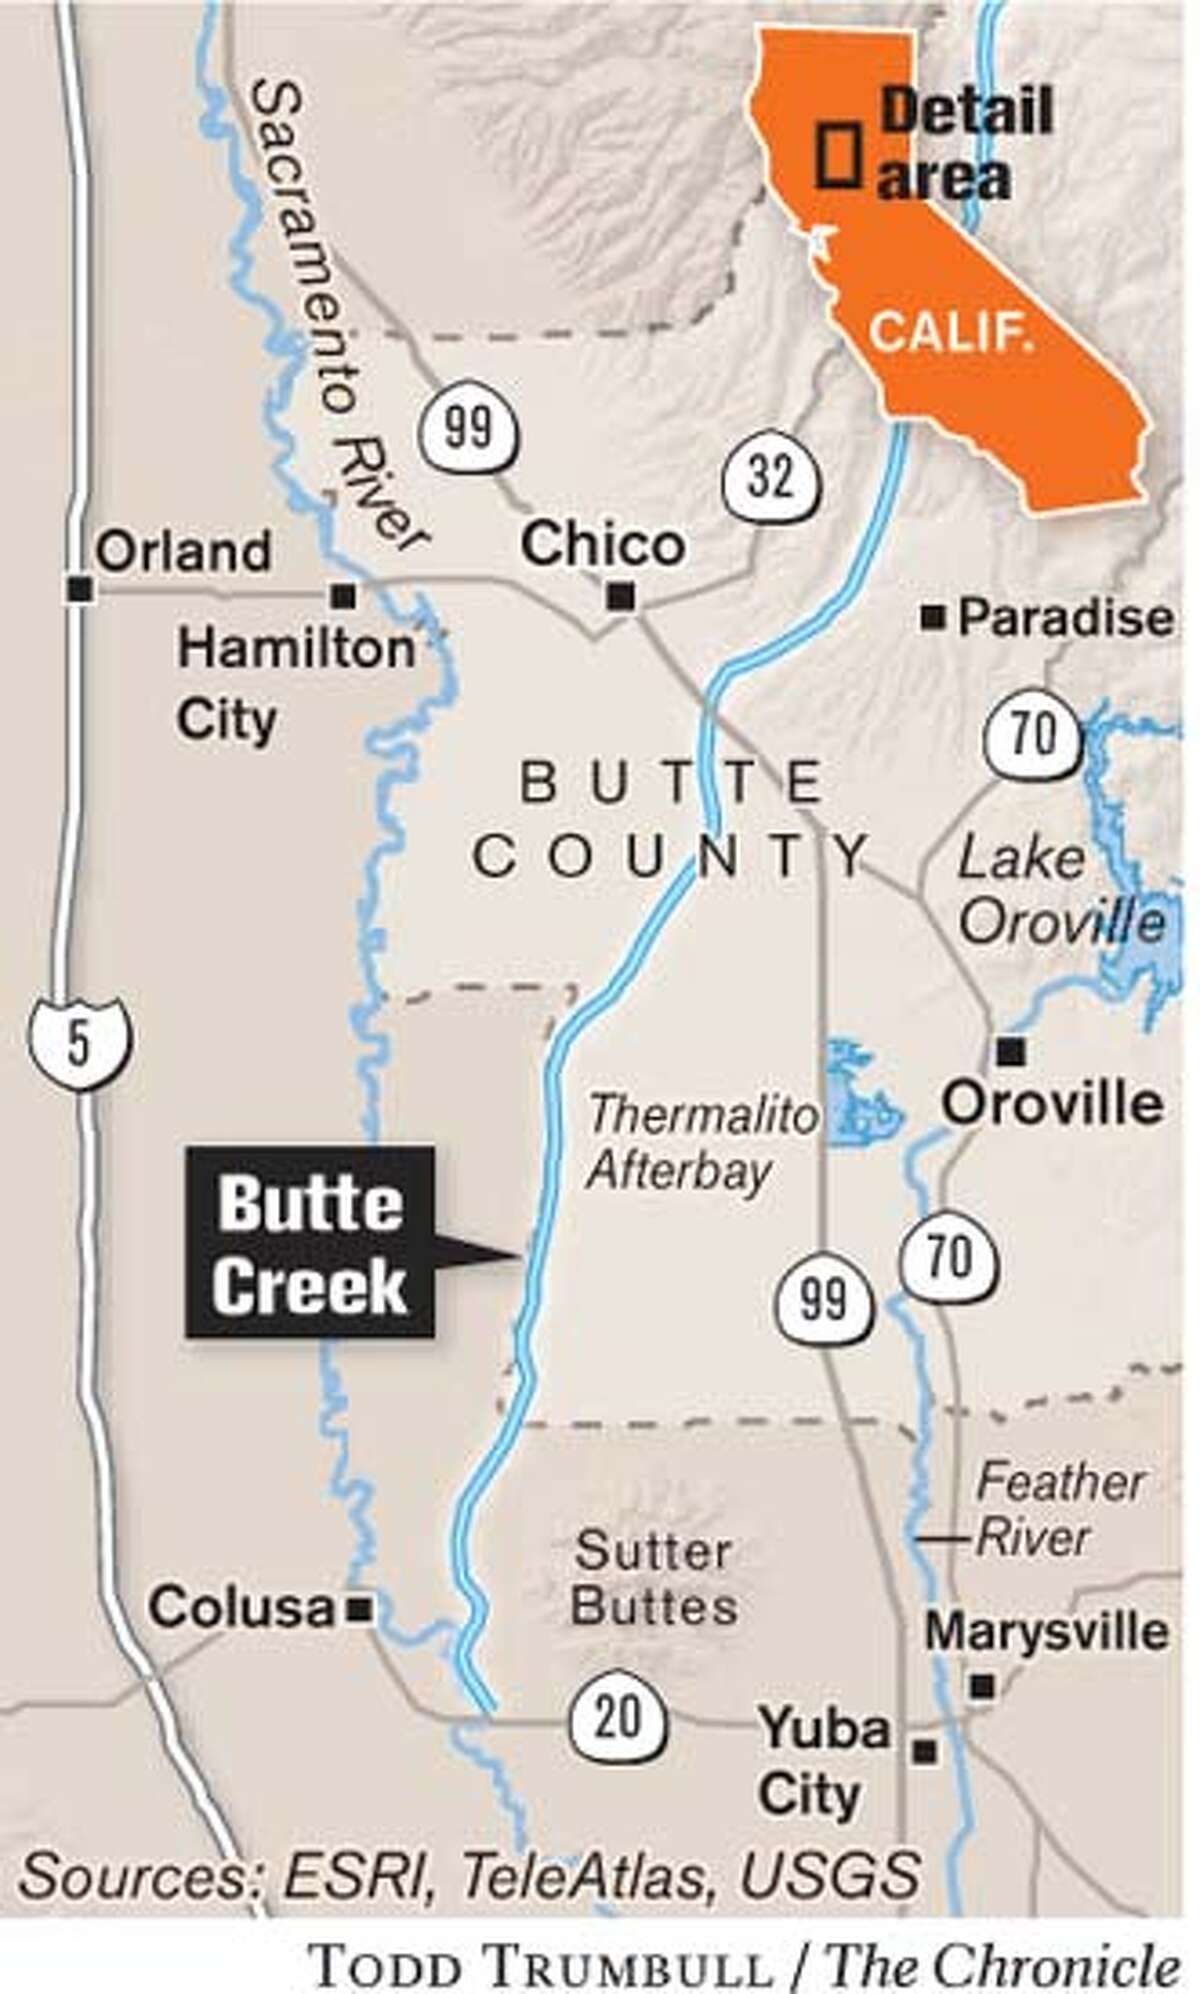 Butte Creek. Chronicle graphic by Todd Trumbull